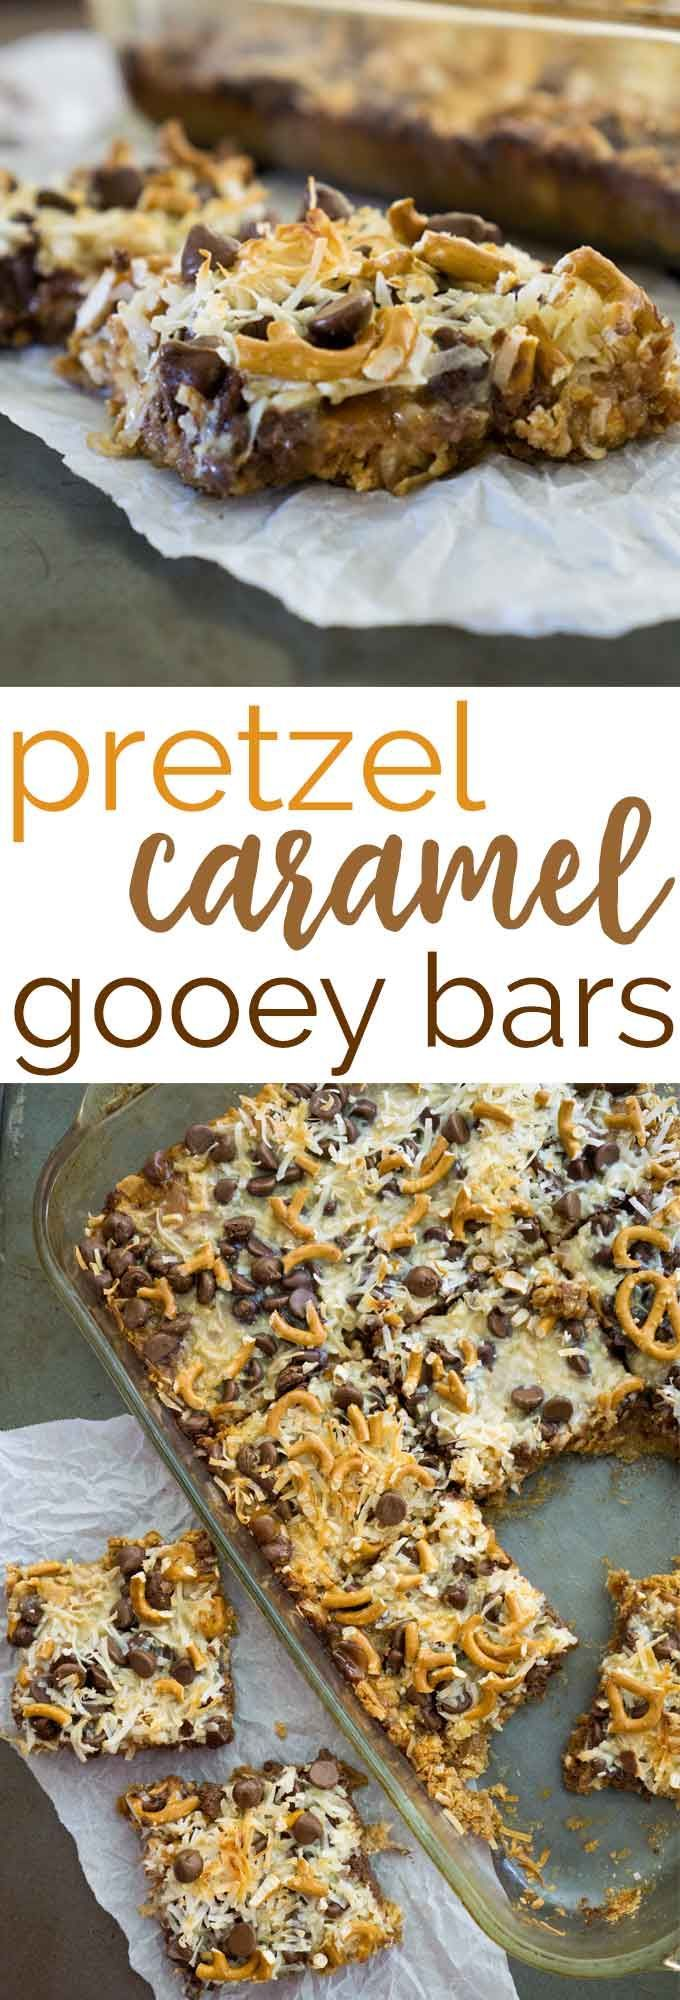 Ooey gooey delicious pretzel caramel bars with chocolate chips and coconut-this is such an easy dessert and always a HUGE hit when I make them!